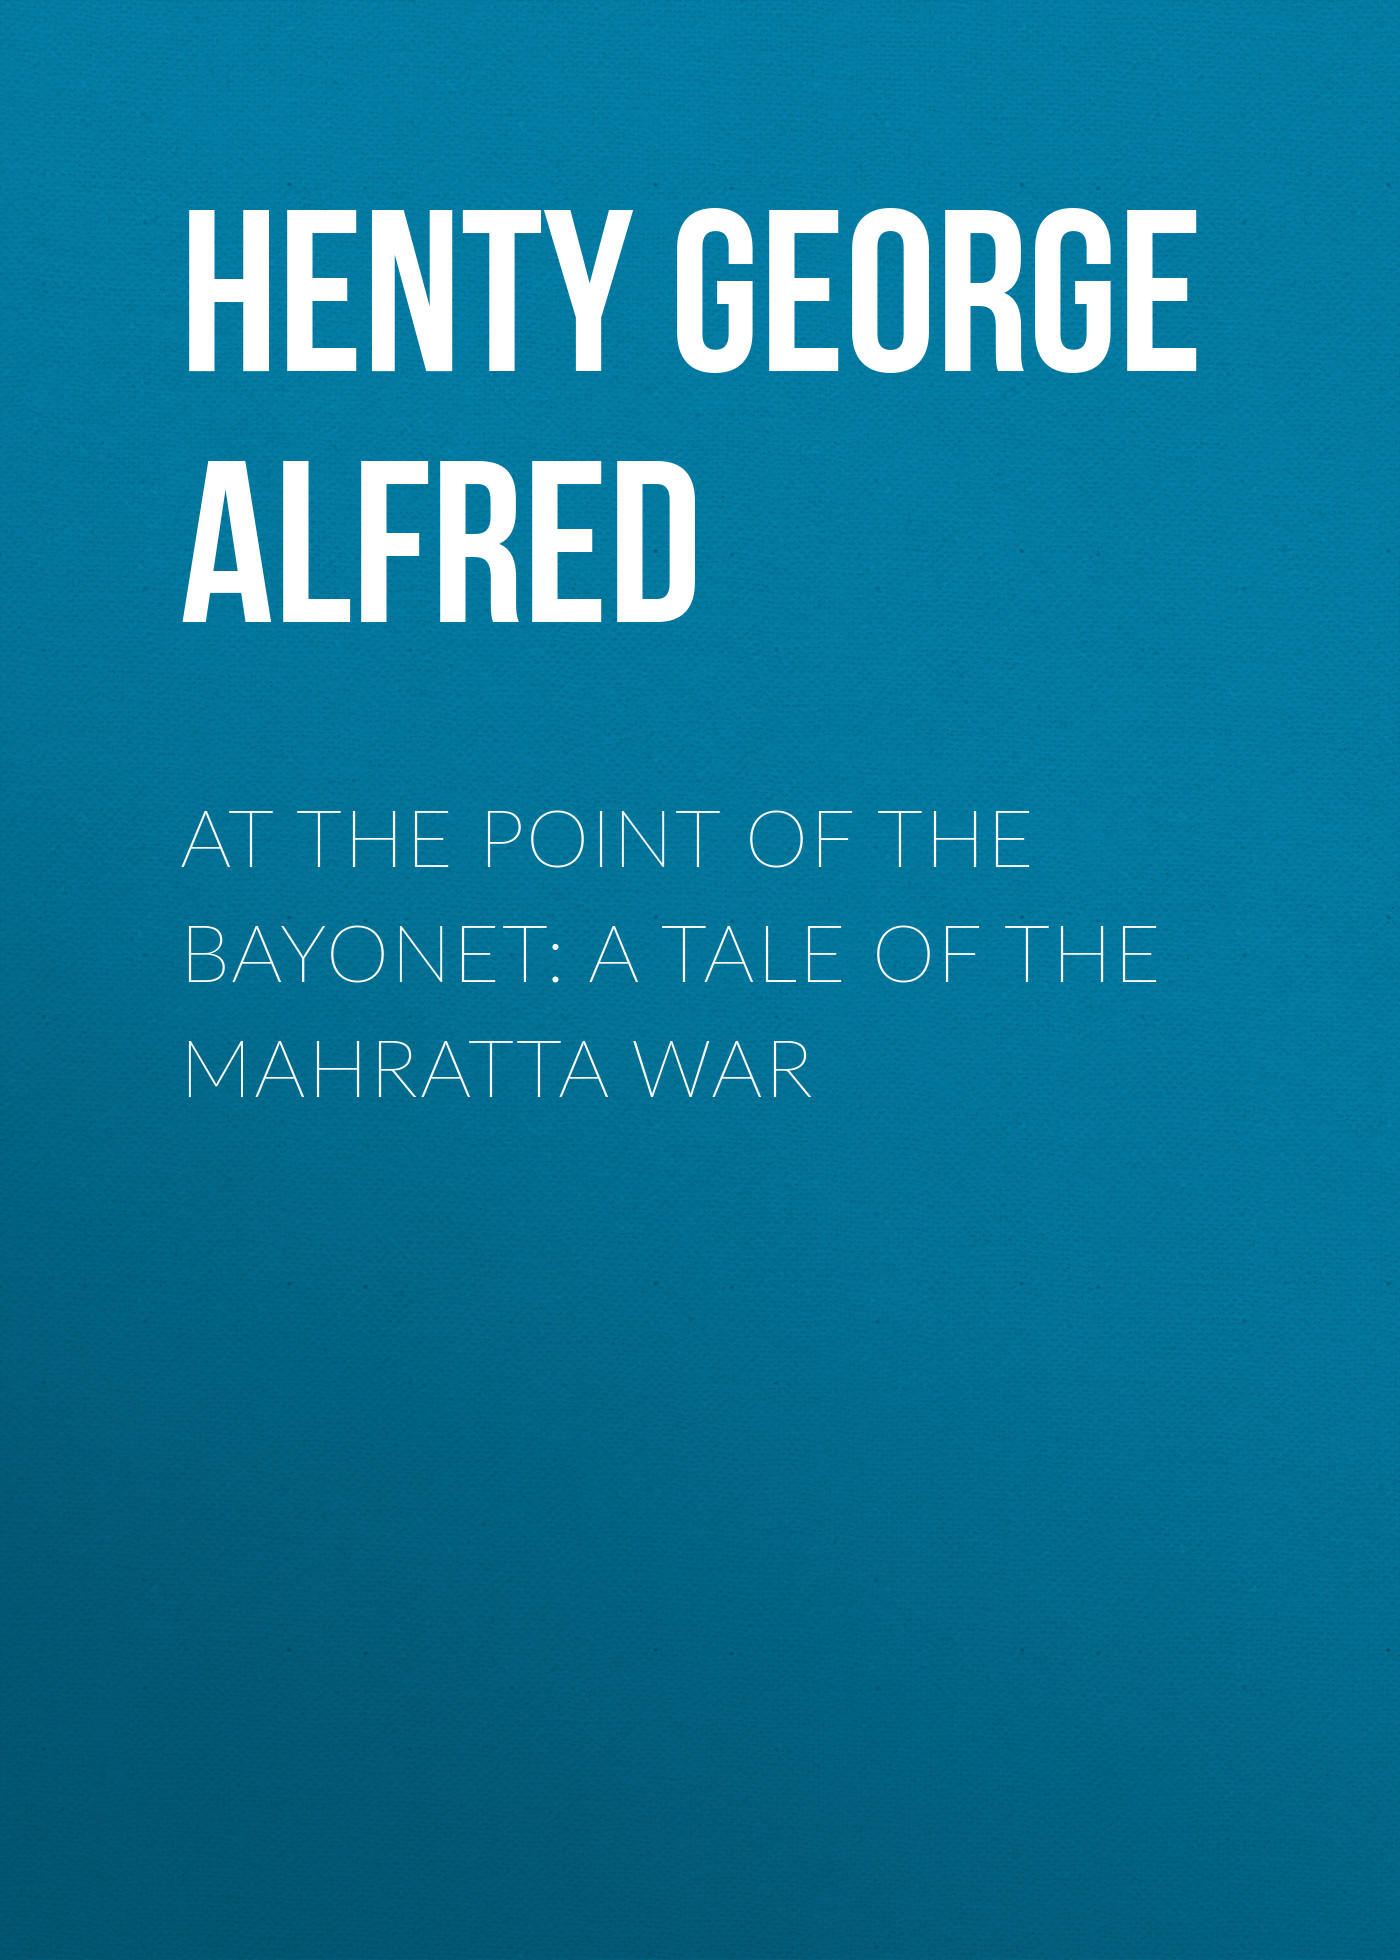 лучшая цена Henty George Alfred At the Point of the Bayonet: A Tale of the Mahratta War